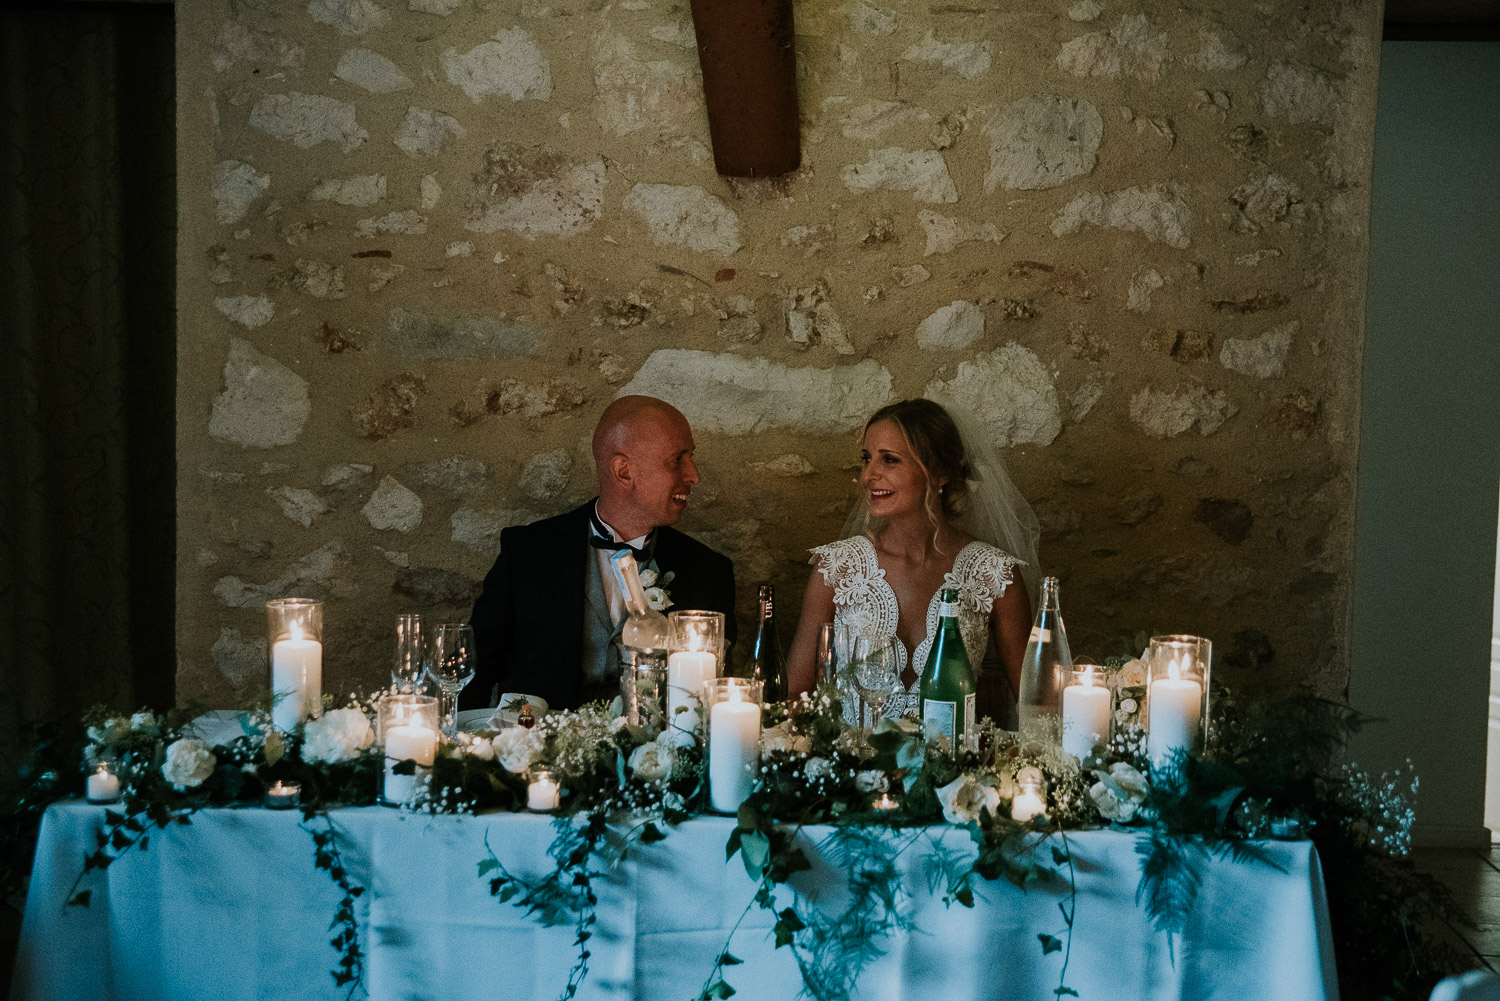 le_castelet_castres_tarn_gascony_south_west_france_family_wedding_katy_webb_photography_UK112